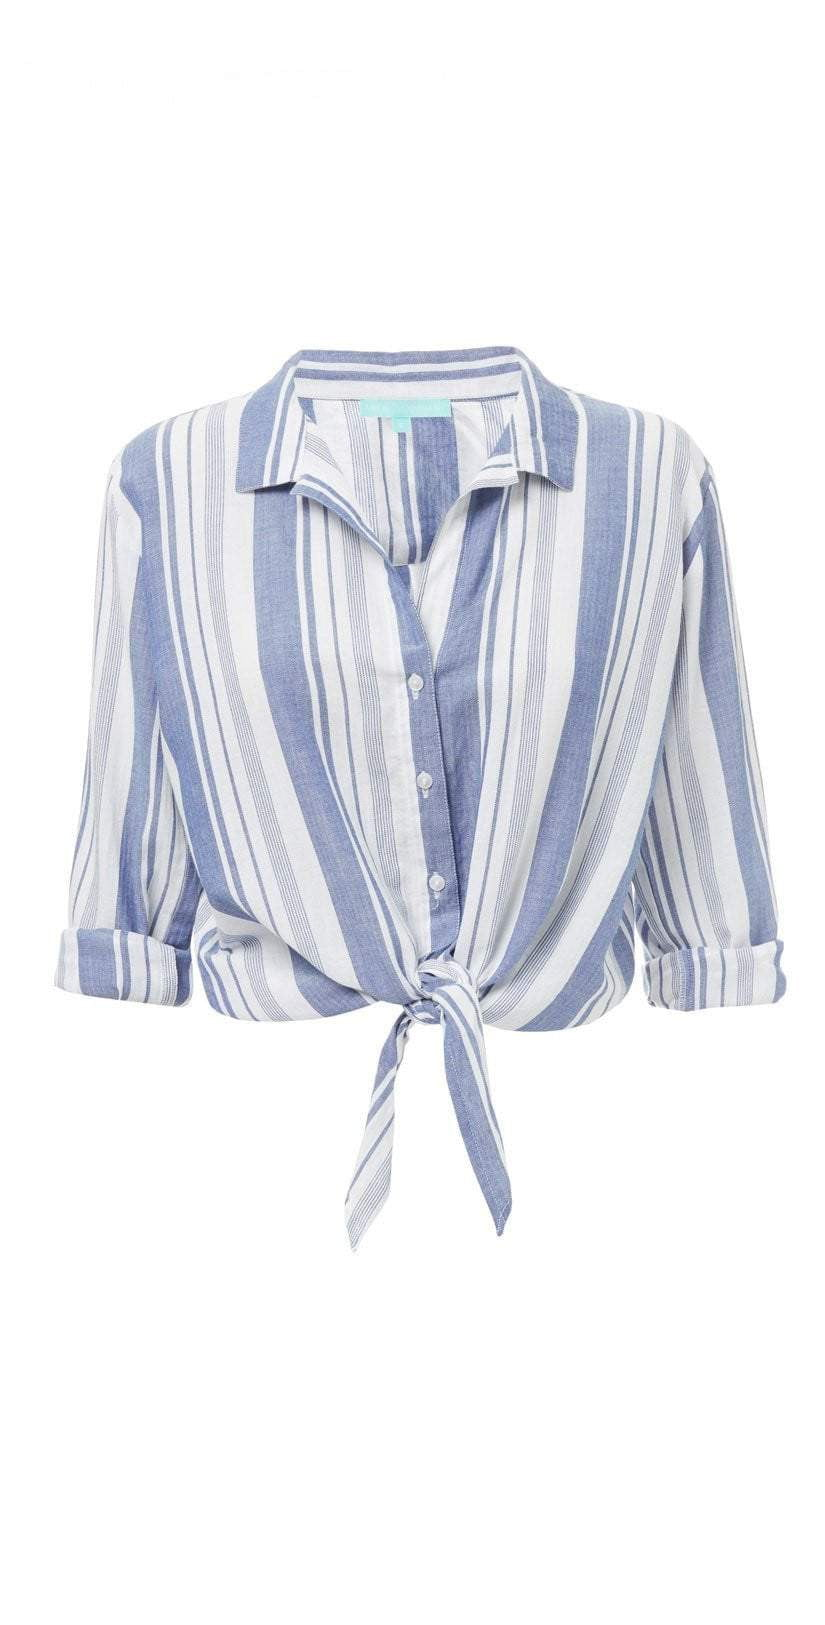 Melissa Odabash Inny Blue Stripe Button Up Top: